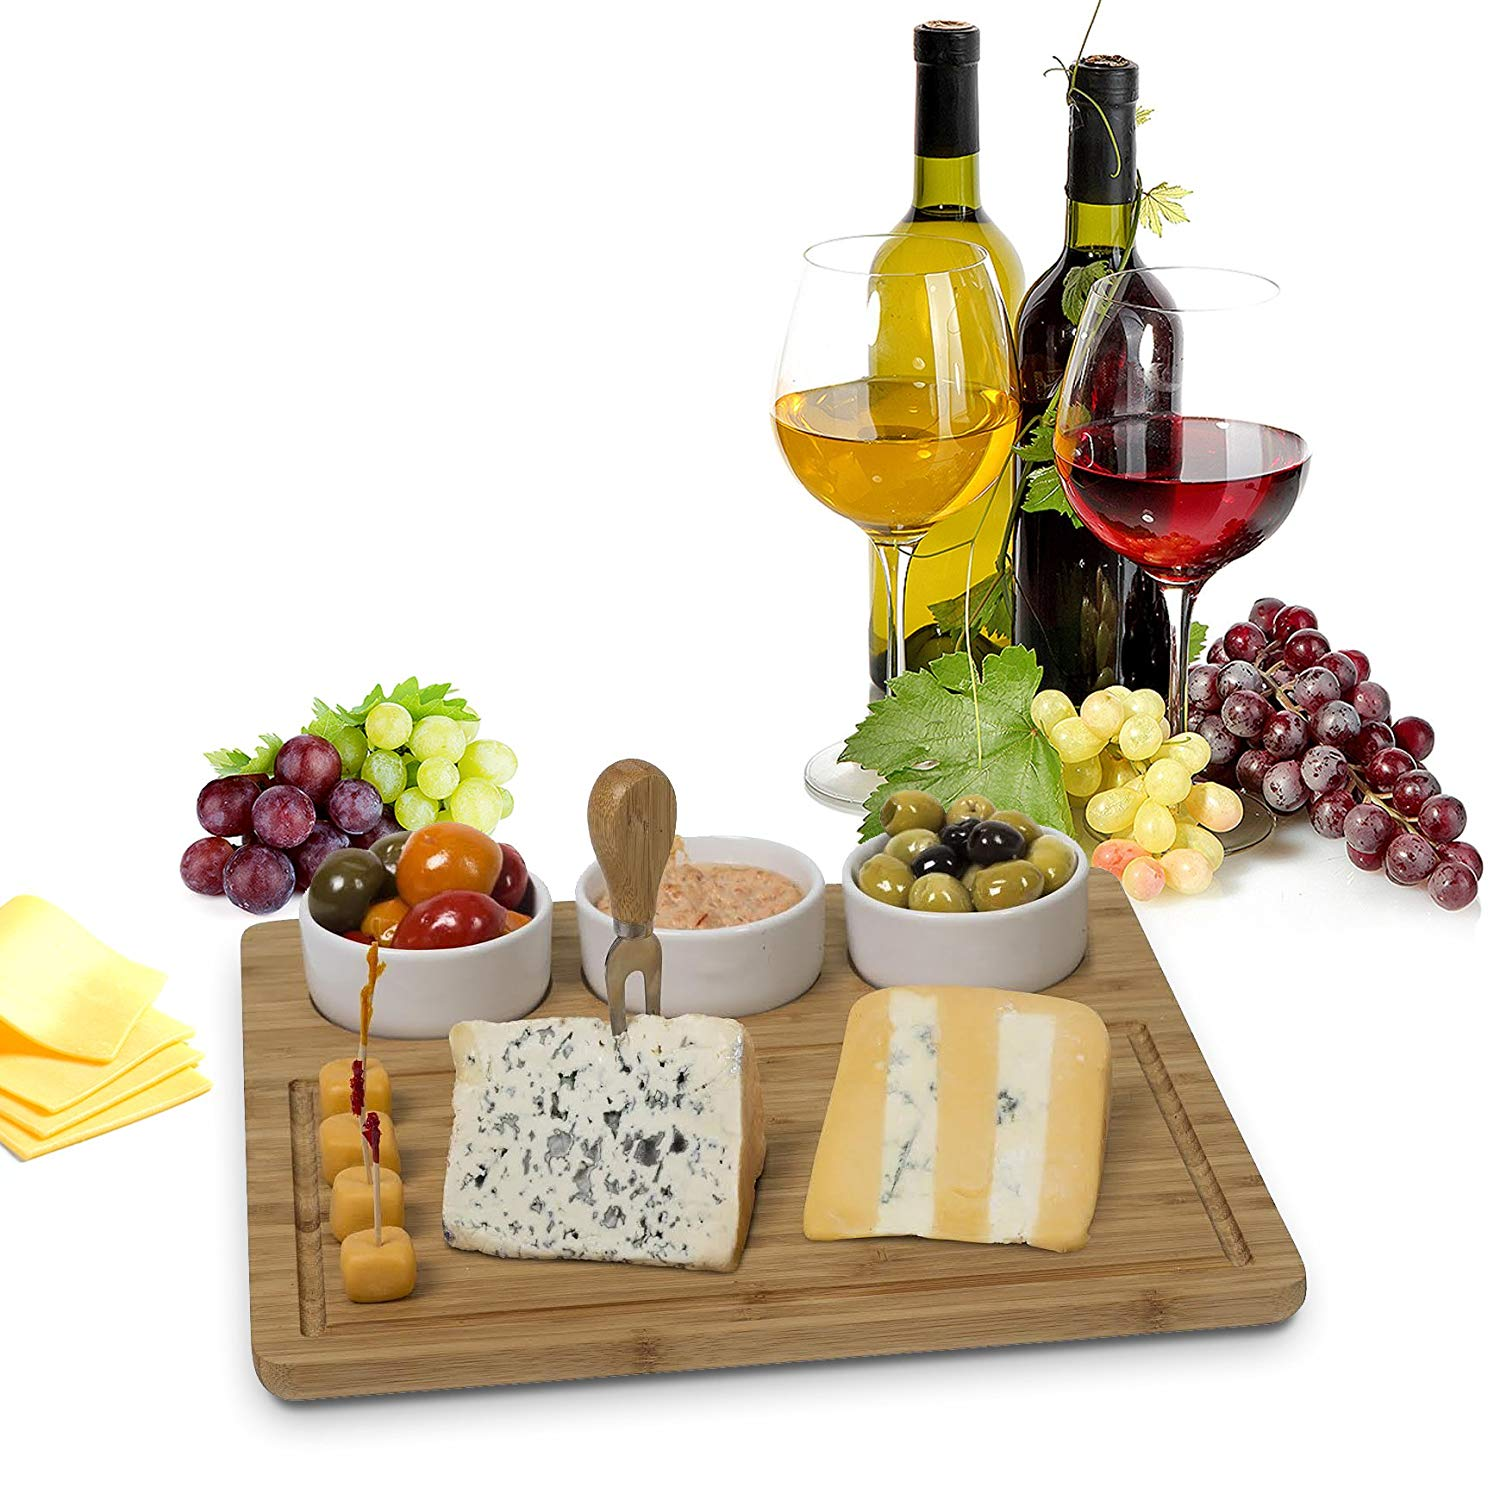 Cheap Cheese Platter Ideas Find Cheese Platter Ideas Deals On Line At Alibaba Com